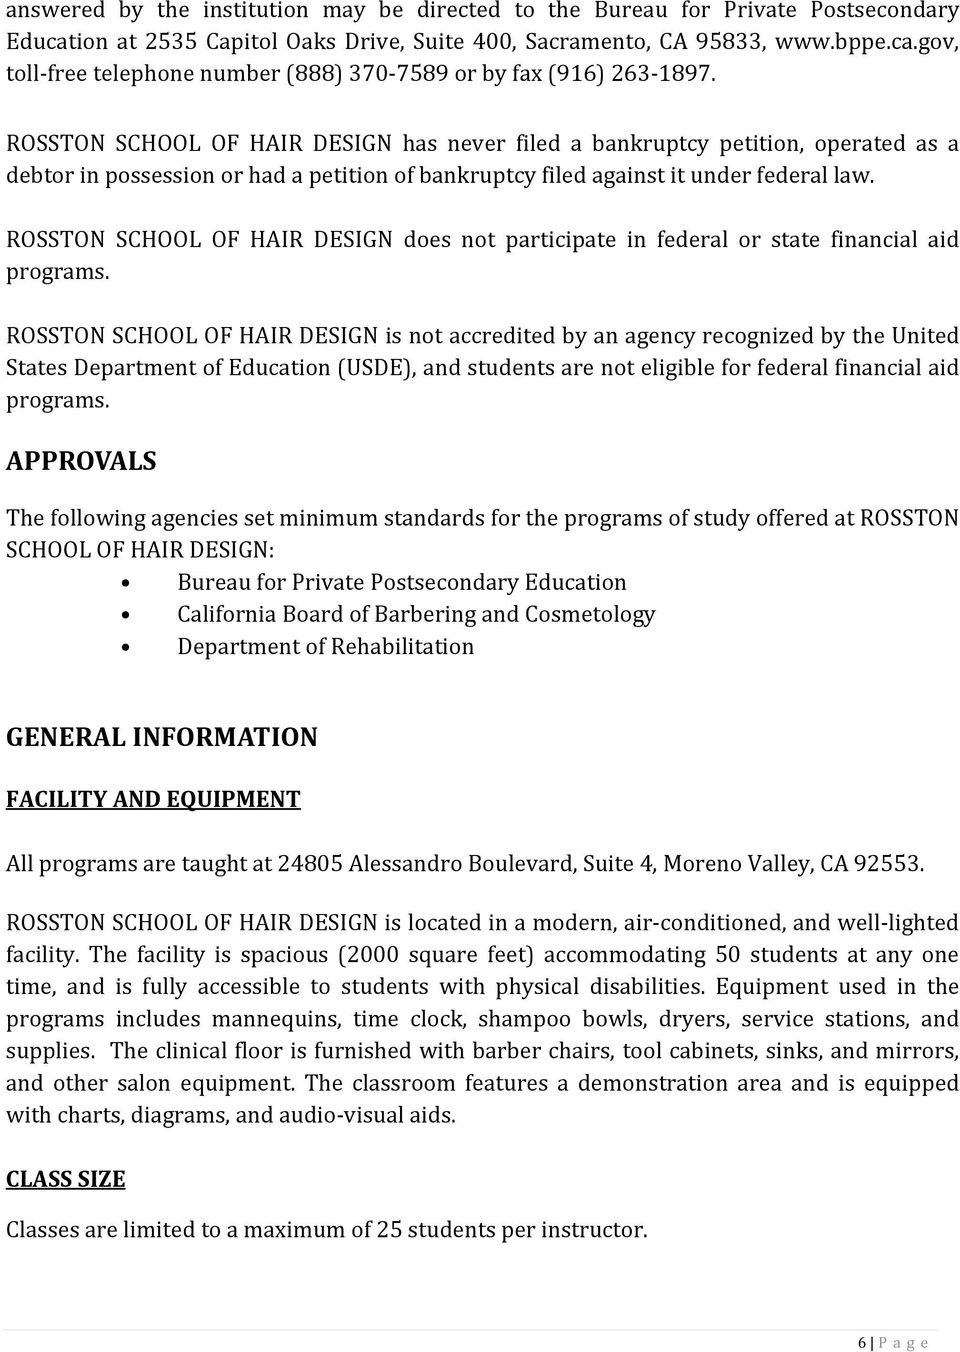 ROSSTON SCHOOL OF HAIR DESIGN does not participate in federal or state financial aid programs.